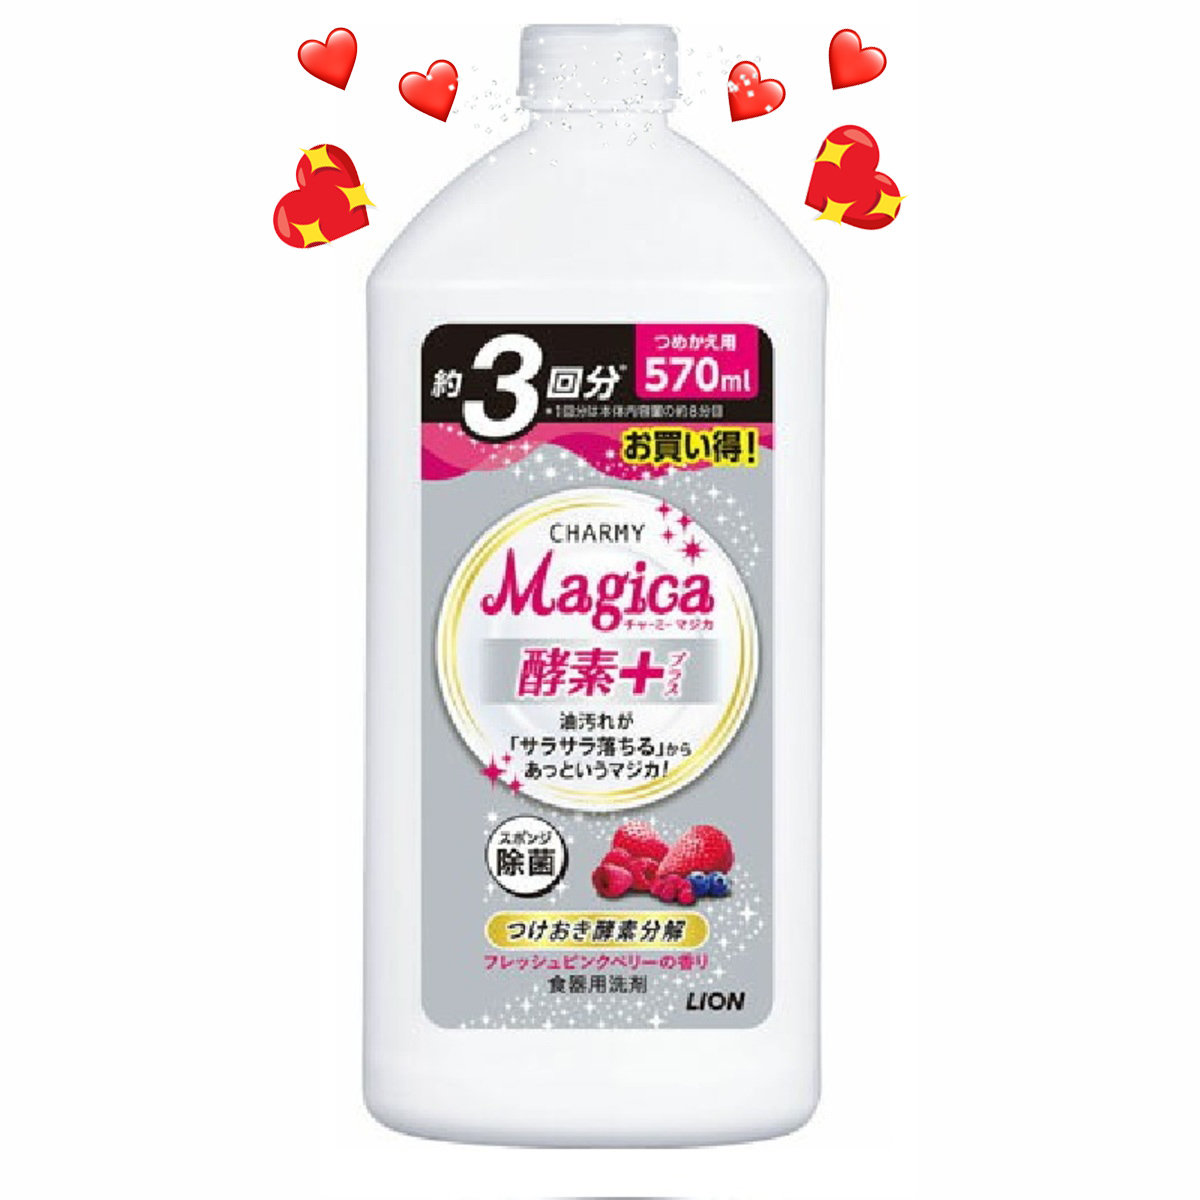 #Berry Charmy Magica Enzyme + Sterilized Concentrated Dishwashing Liquid Refill (Red) 570ml